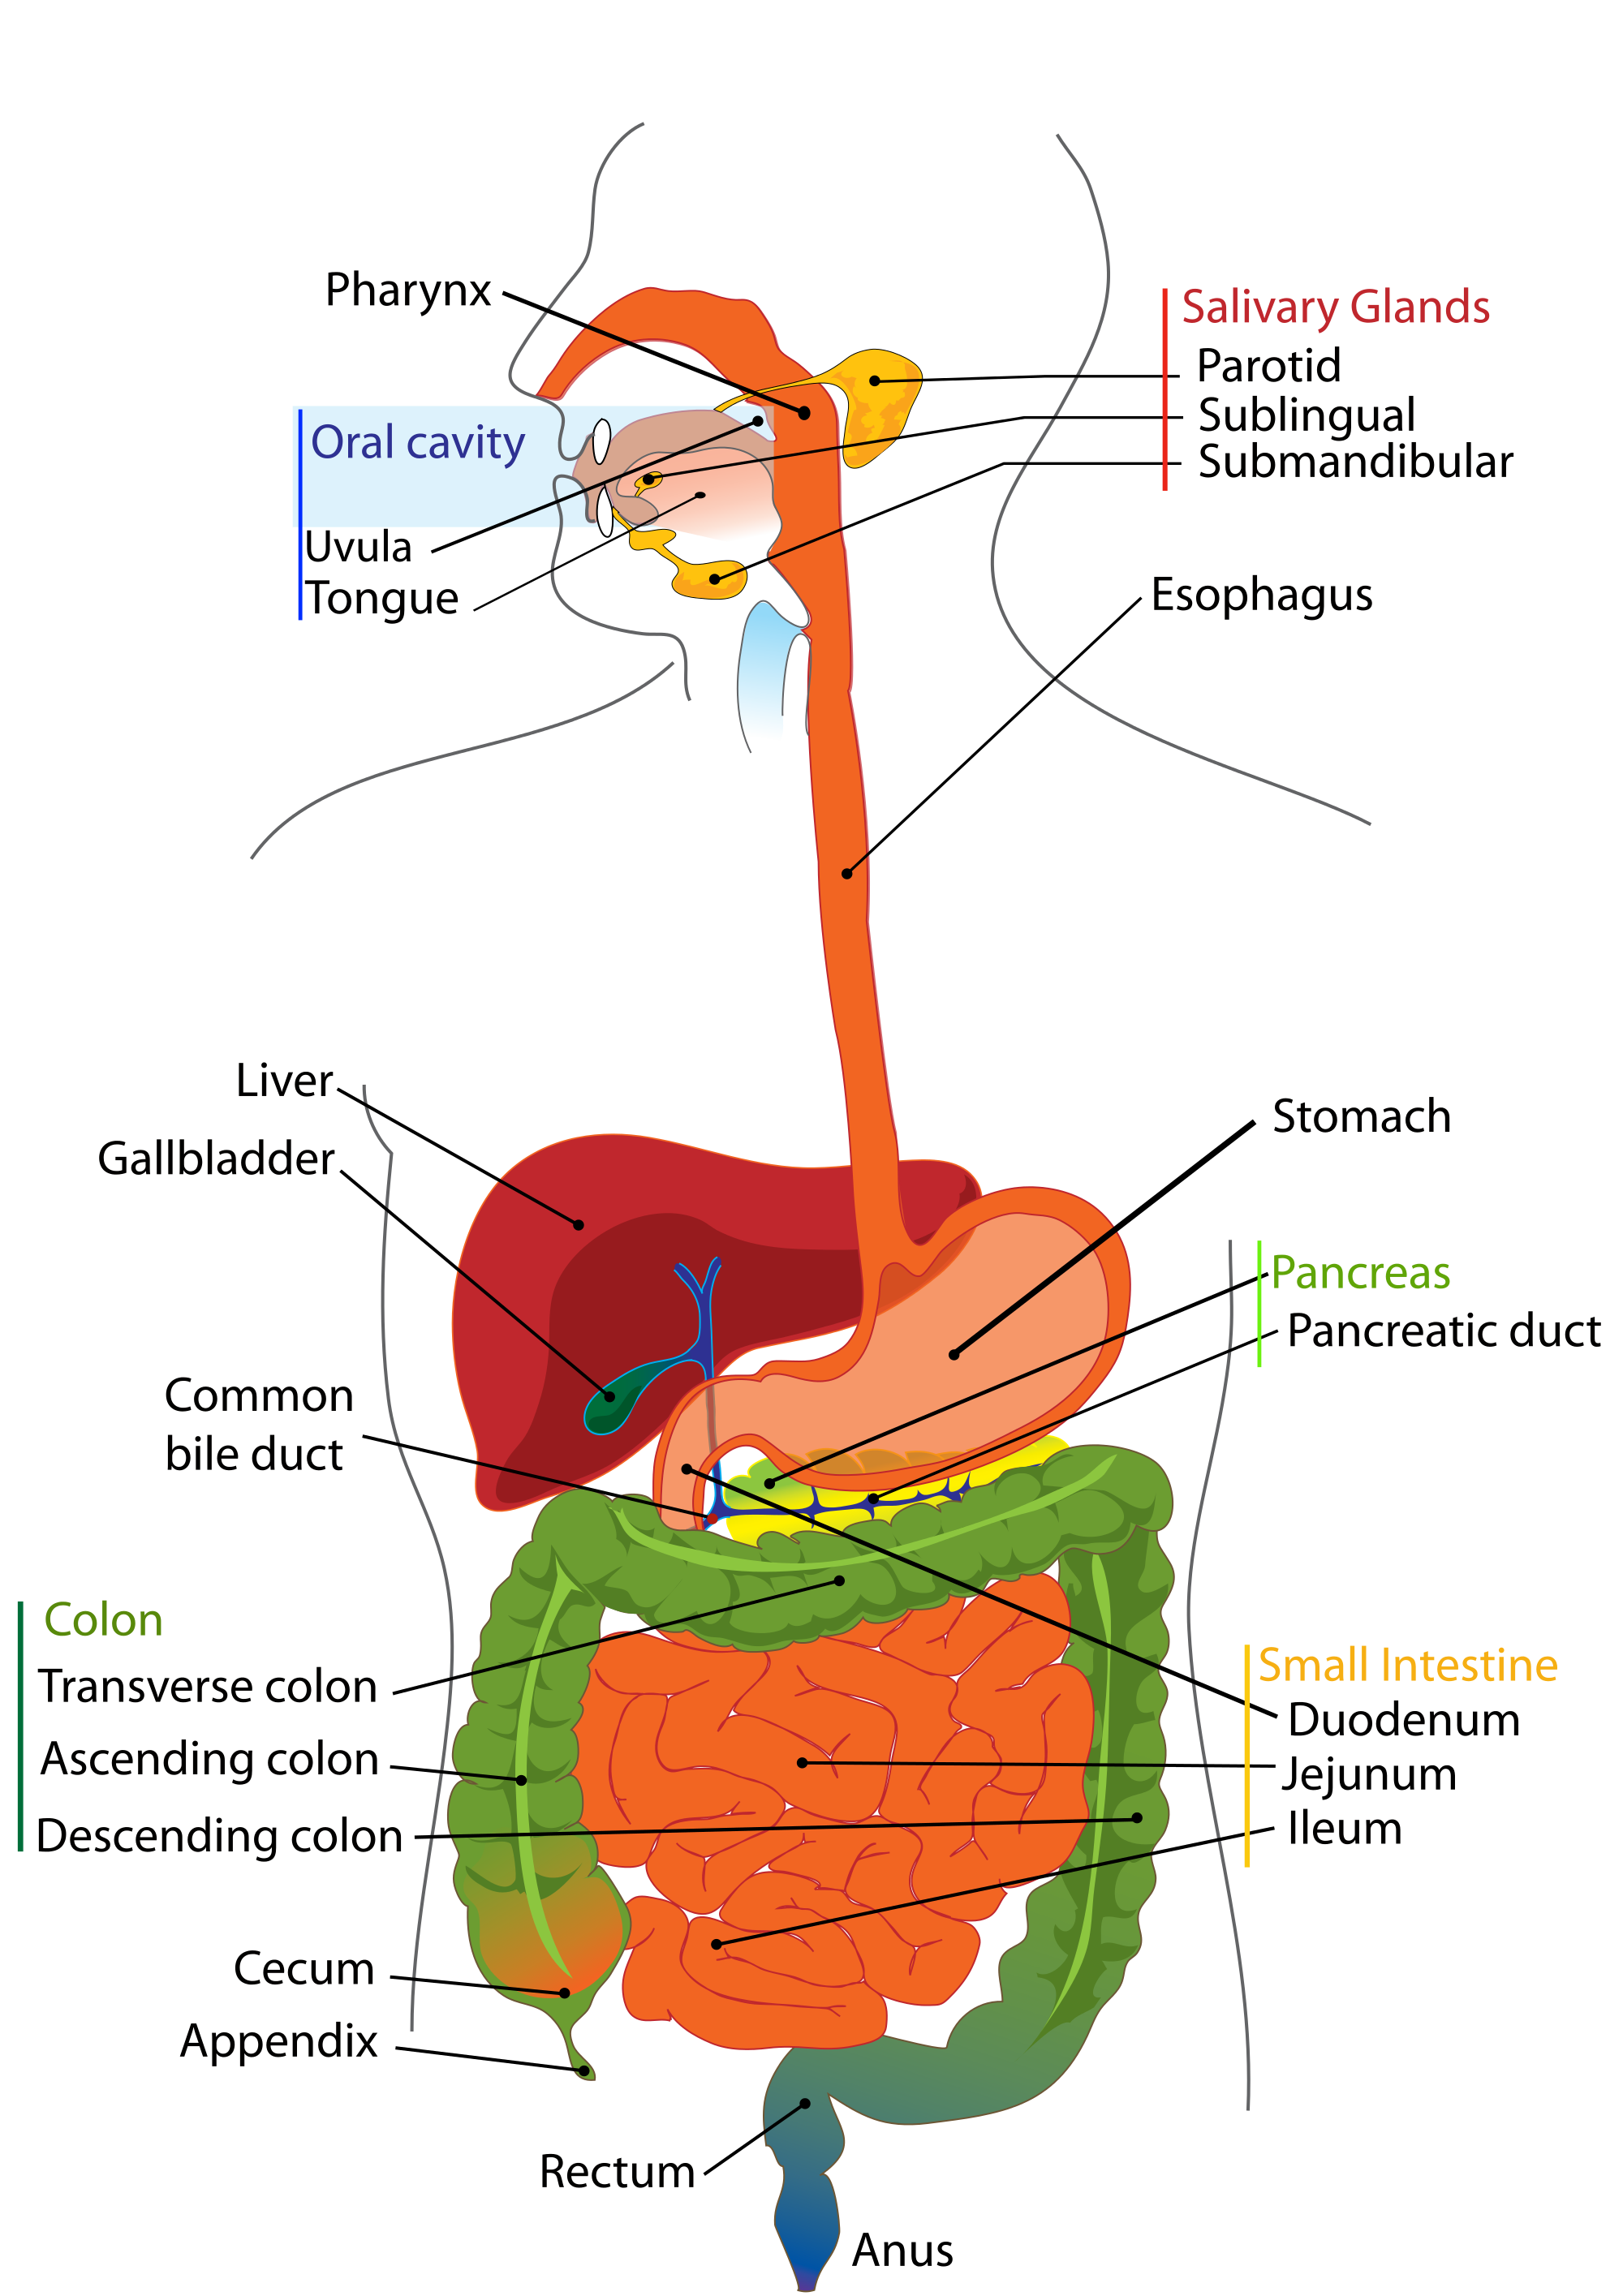 Digestive system structure of the digestive system digestion structure of digestive system pooptronica